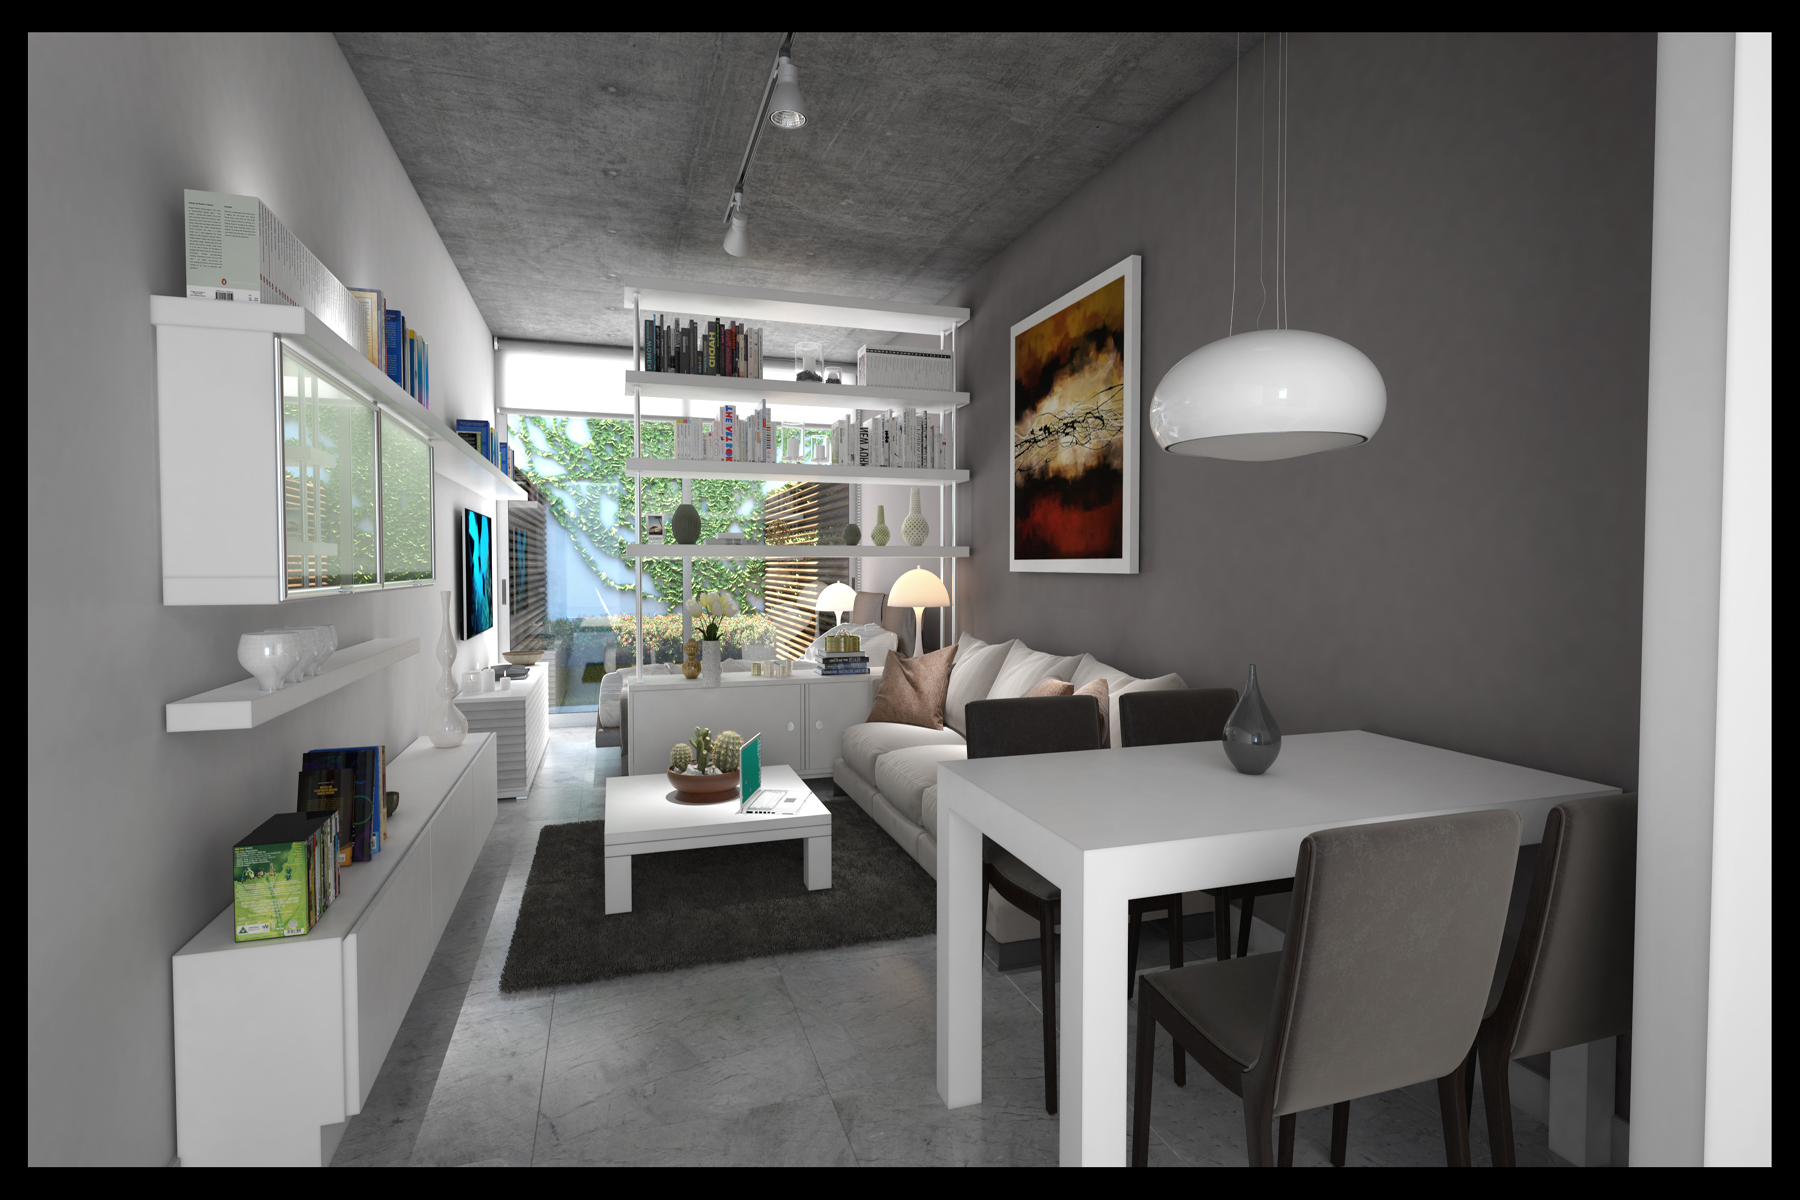 Apartments for Sale at WH Coghlan Studio with functional architecture Nuñez 3800 Buenos Aires, Buenos Aires C1429 Argentina